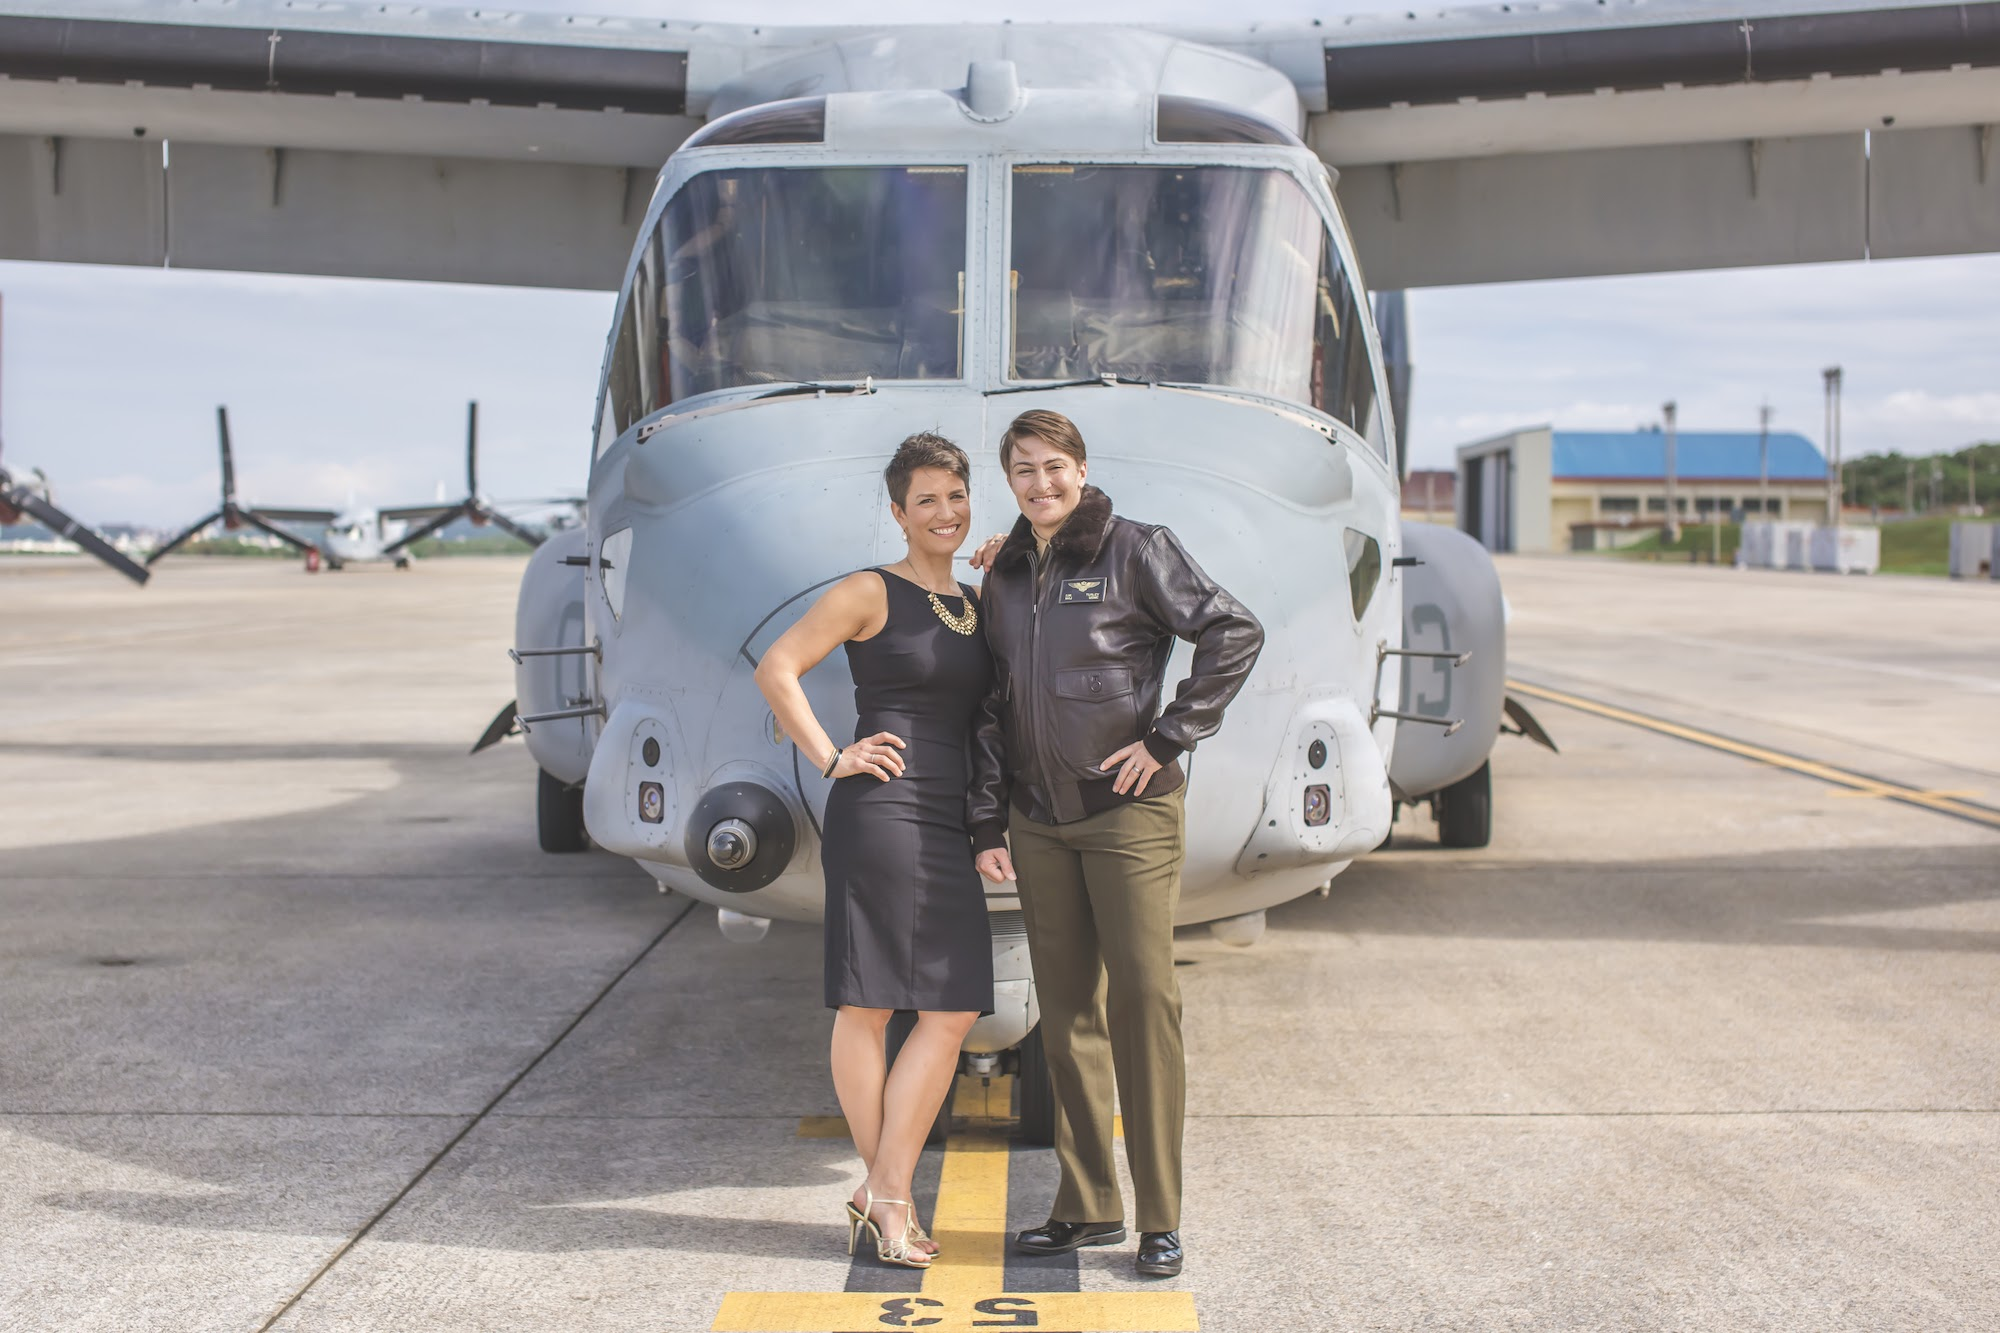 A military couple in dress and jacket, posing in front of a U.S. aircraft outside.